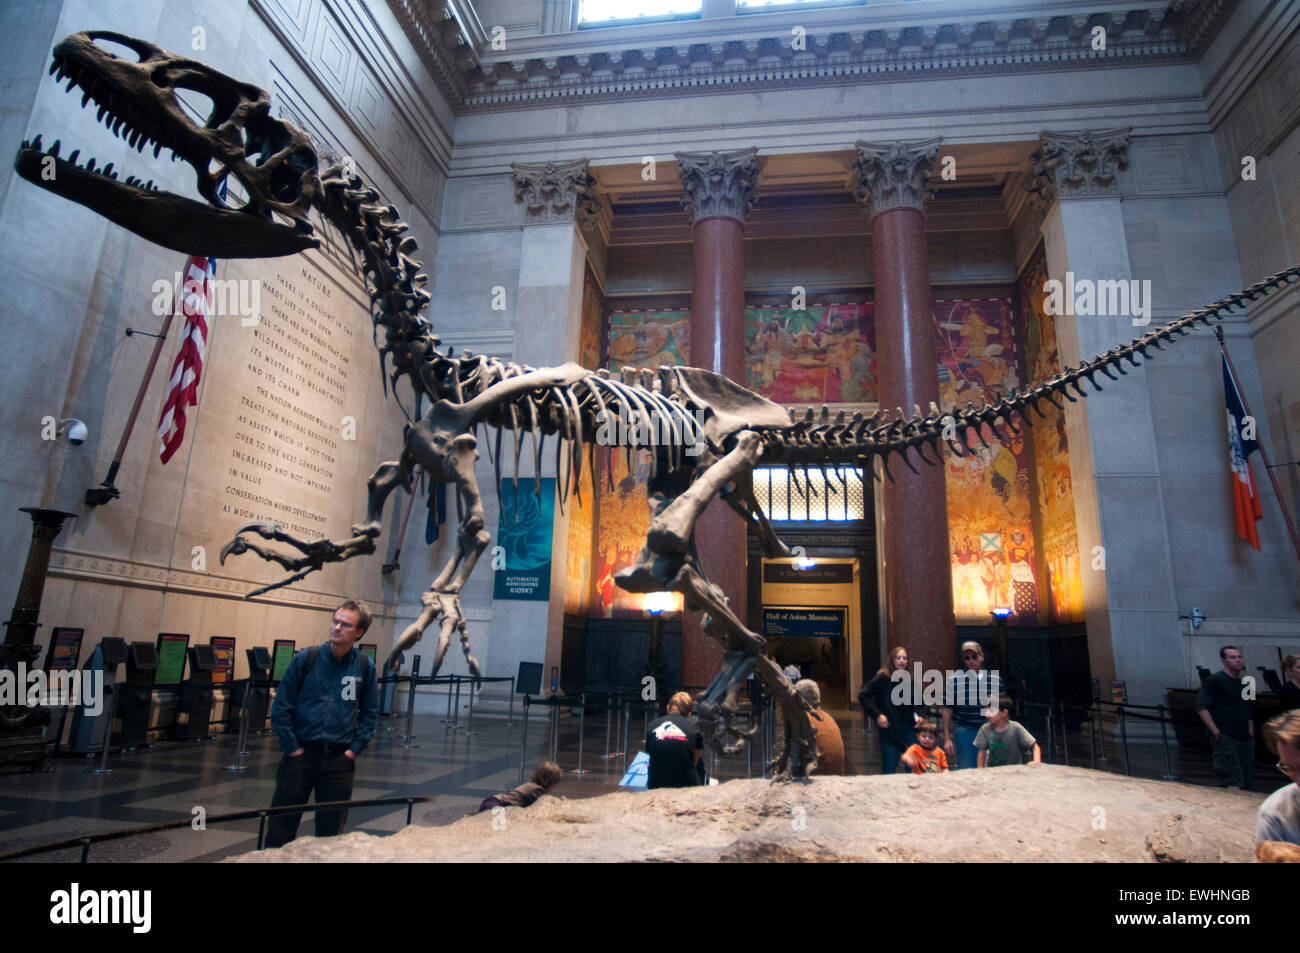 American Museum of Natural History. Central Park West and 79th Street . The areas that attract attention are the - Stock Image